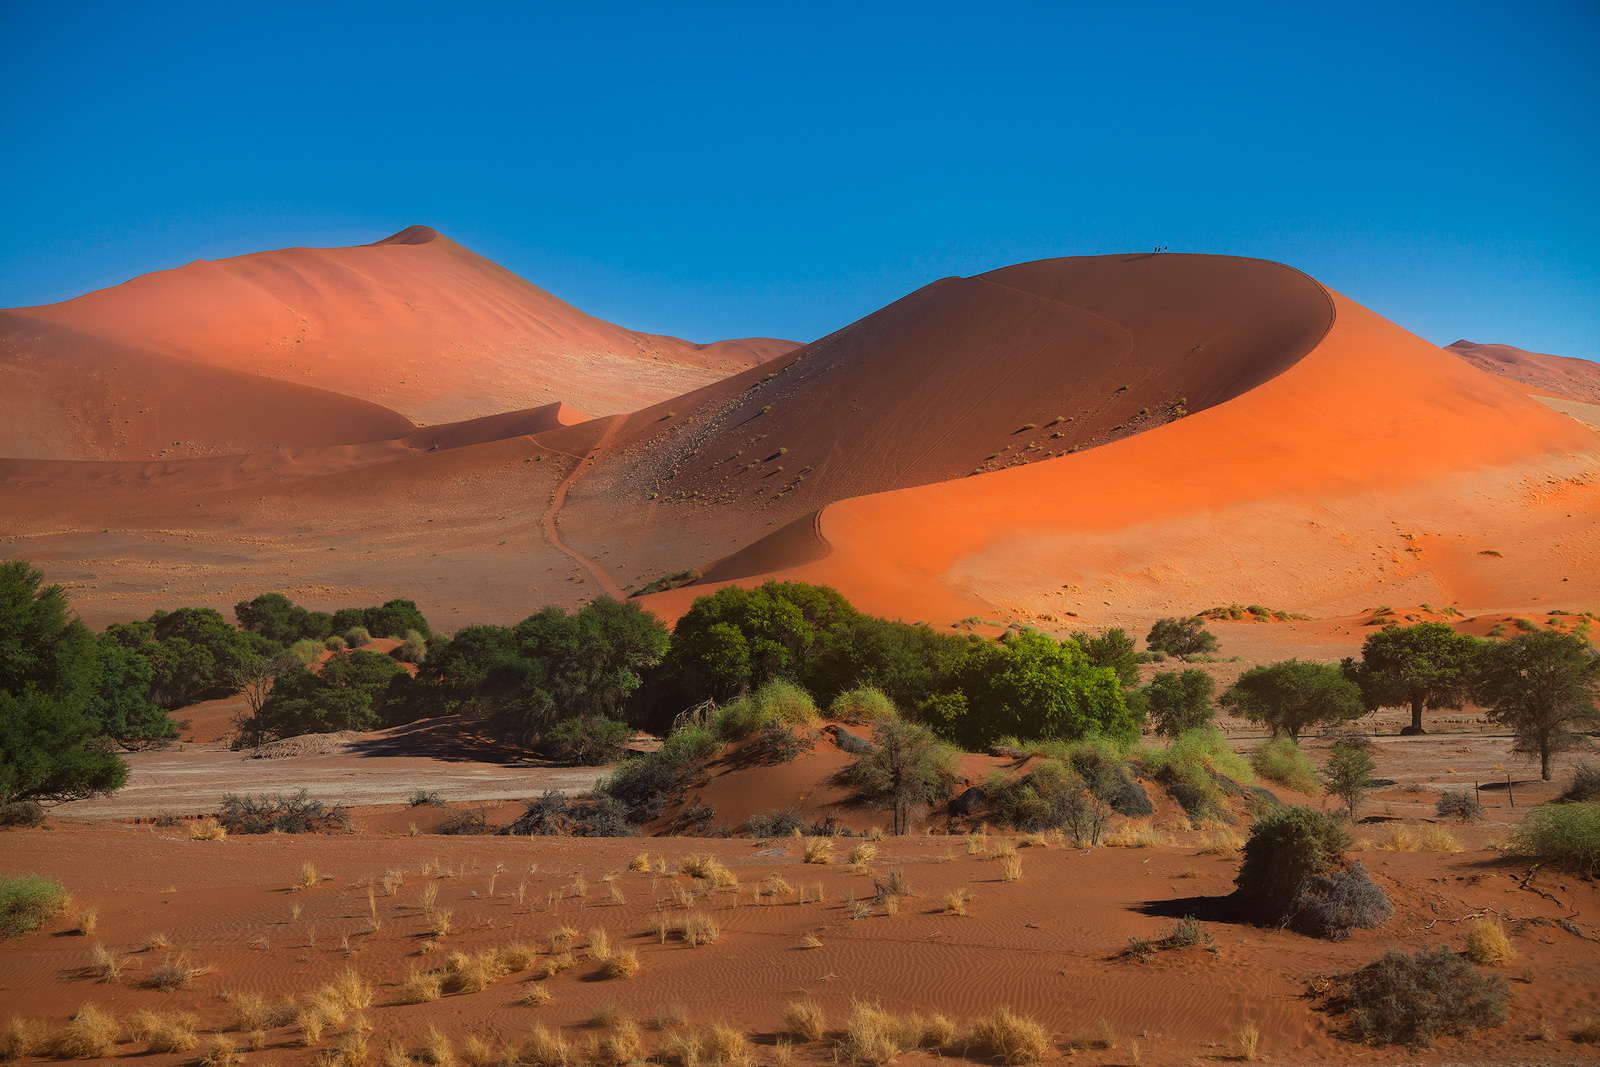 The dune known as Little Mama at Sossusvlei